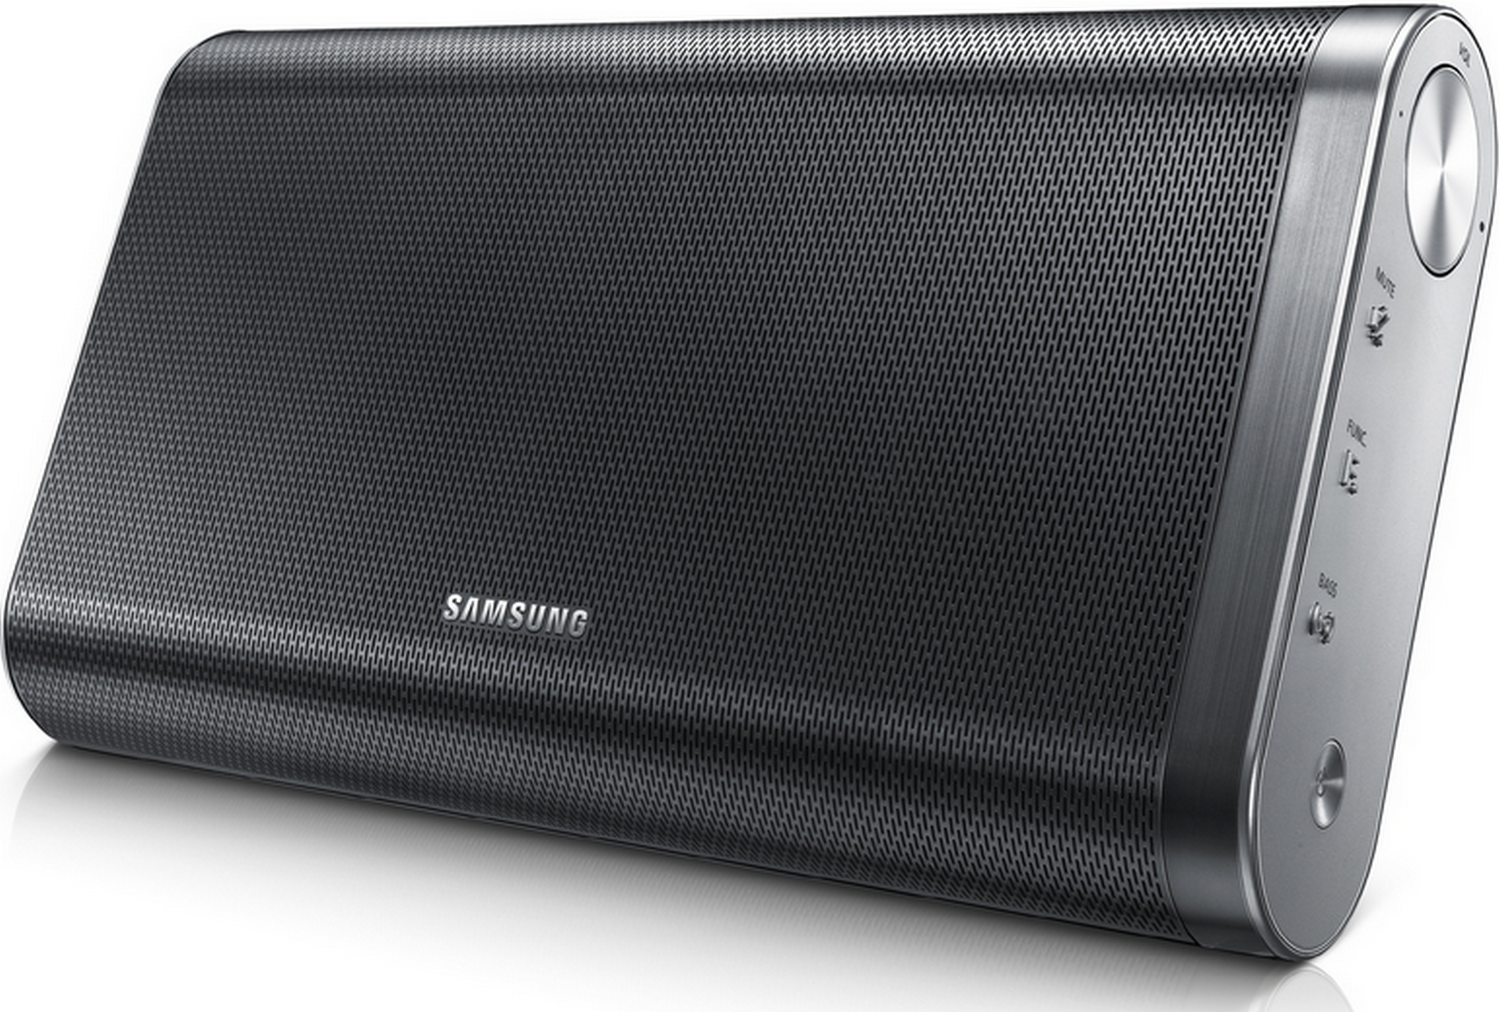 jean marie ces 2013 samsung da f60 enceinte bluetooth nfc. Black Bedroom Furniture Sets. Home Design Ideas